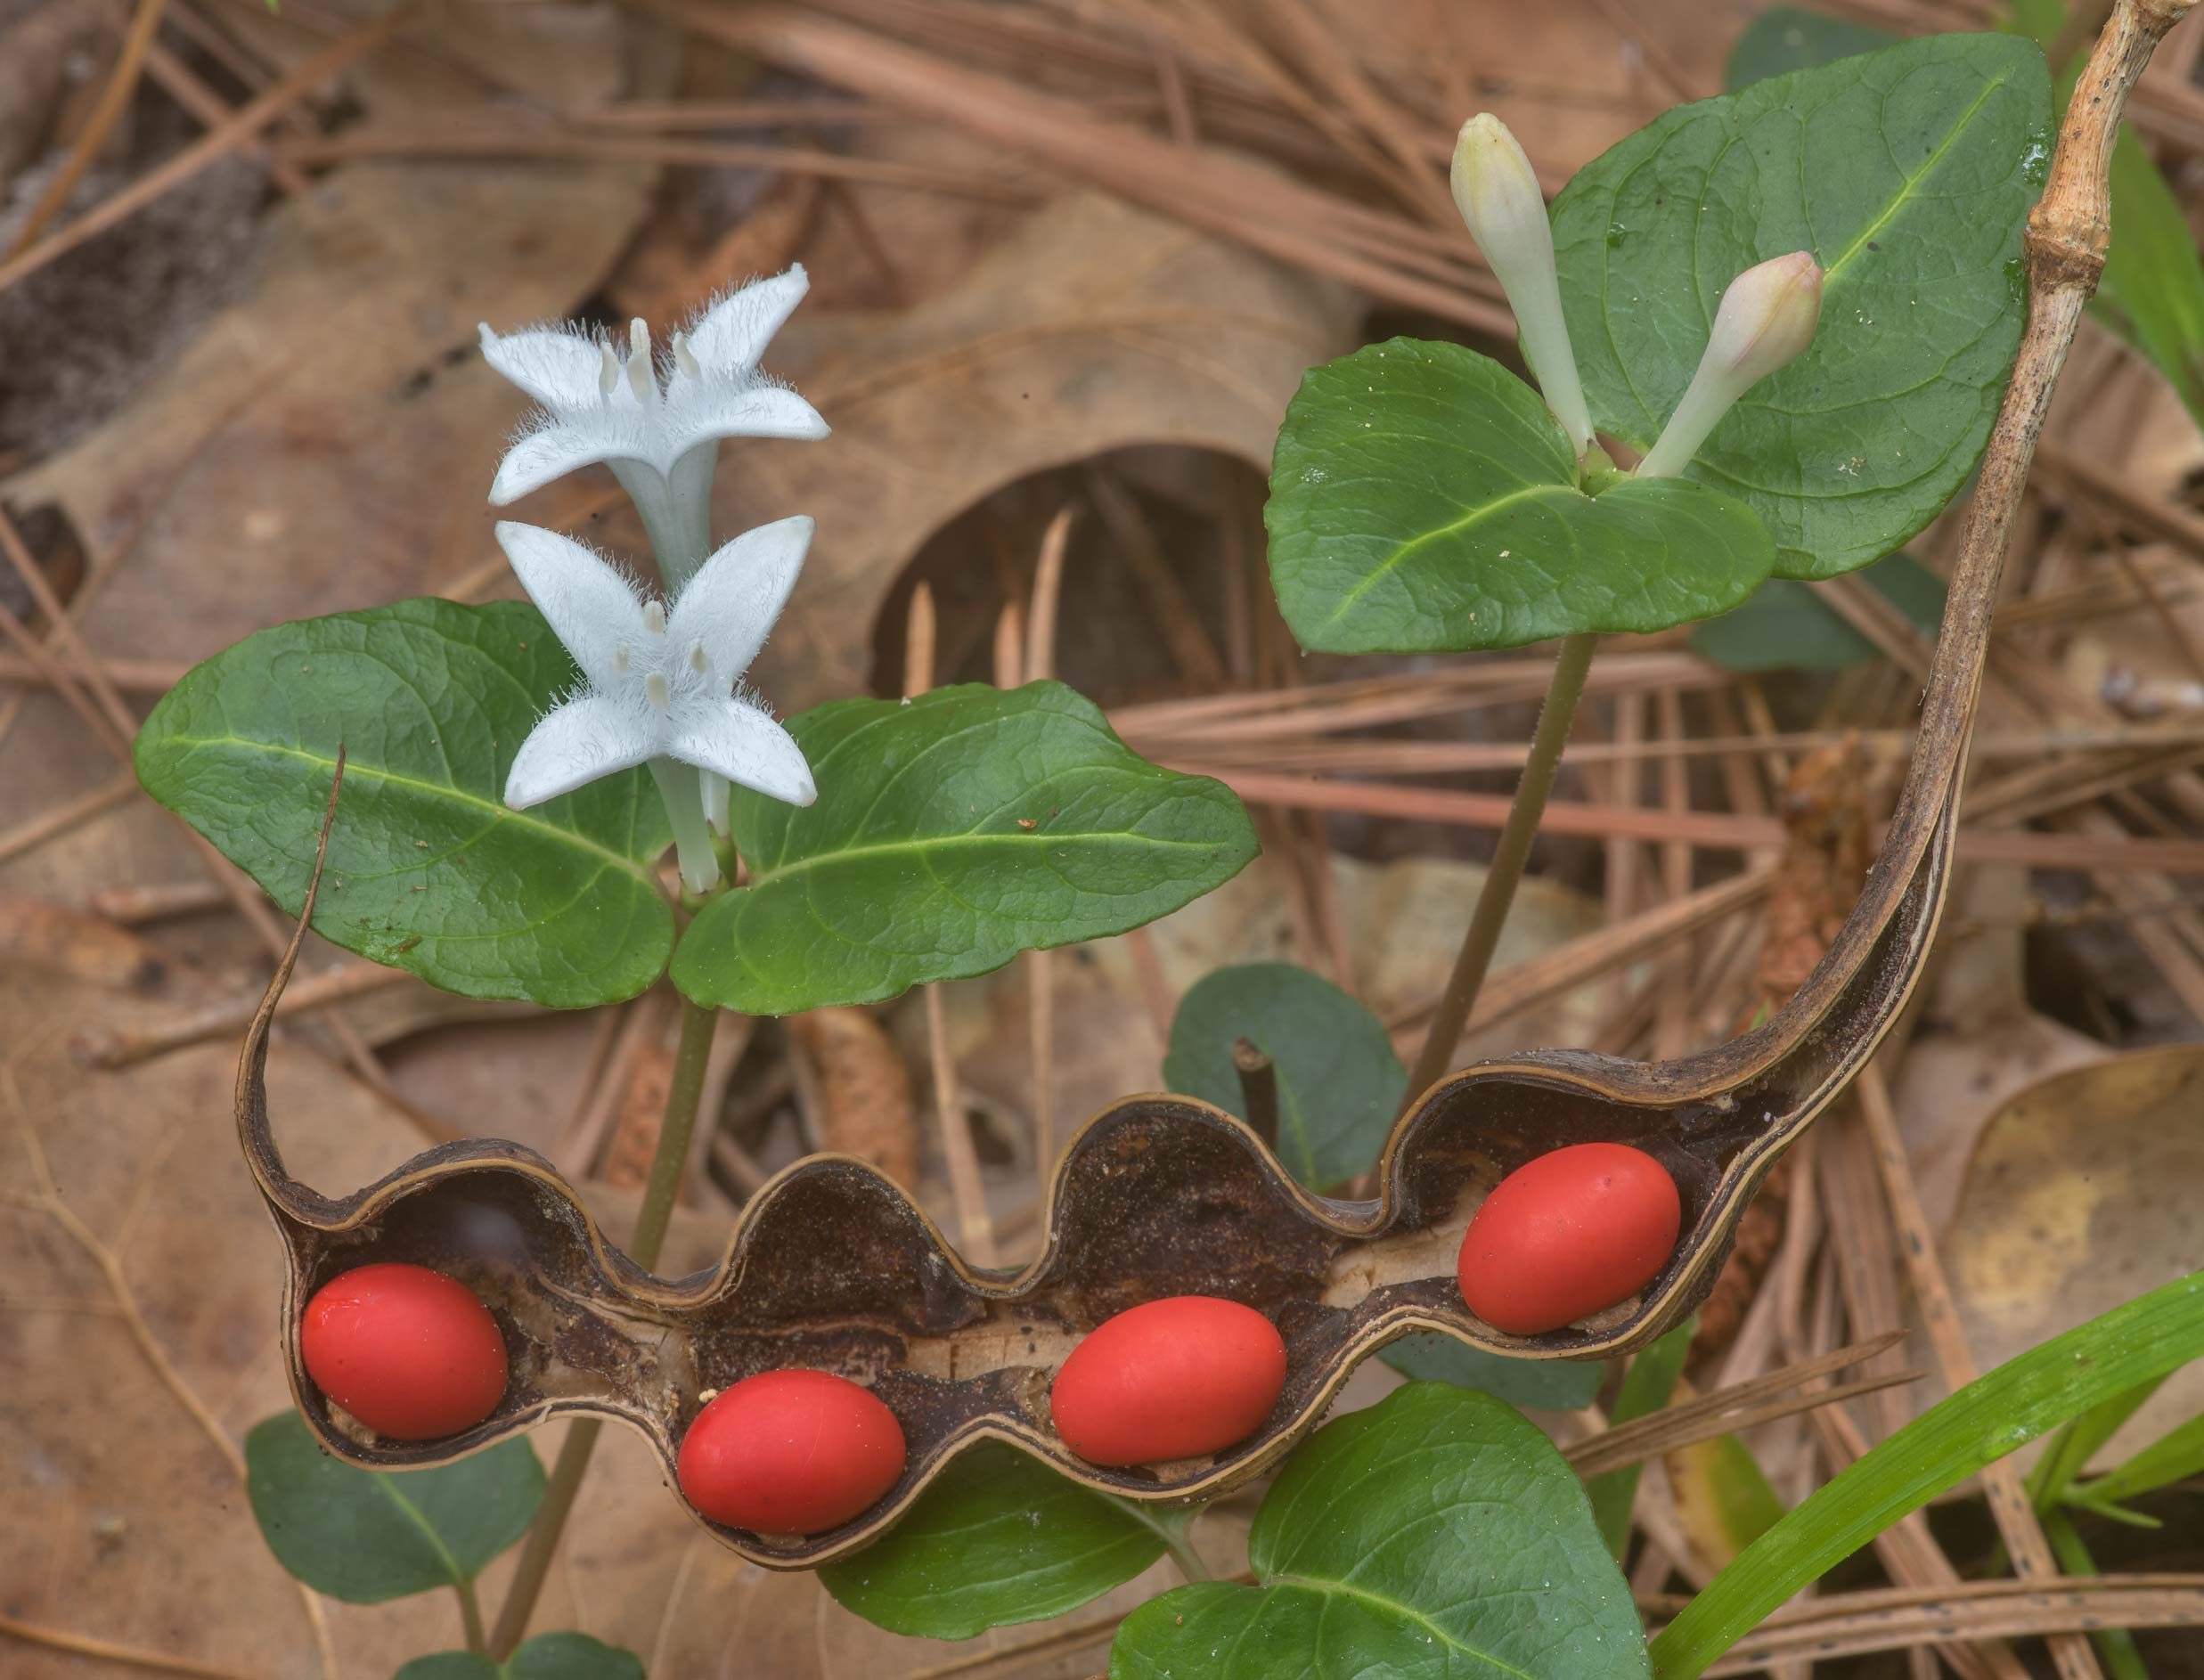 White flowers of partridge berry and red seeds of...National Forest. Richards, Texas